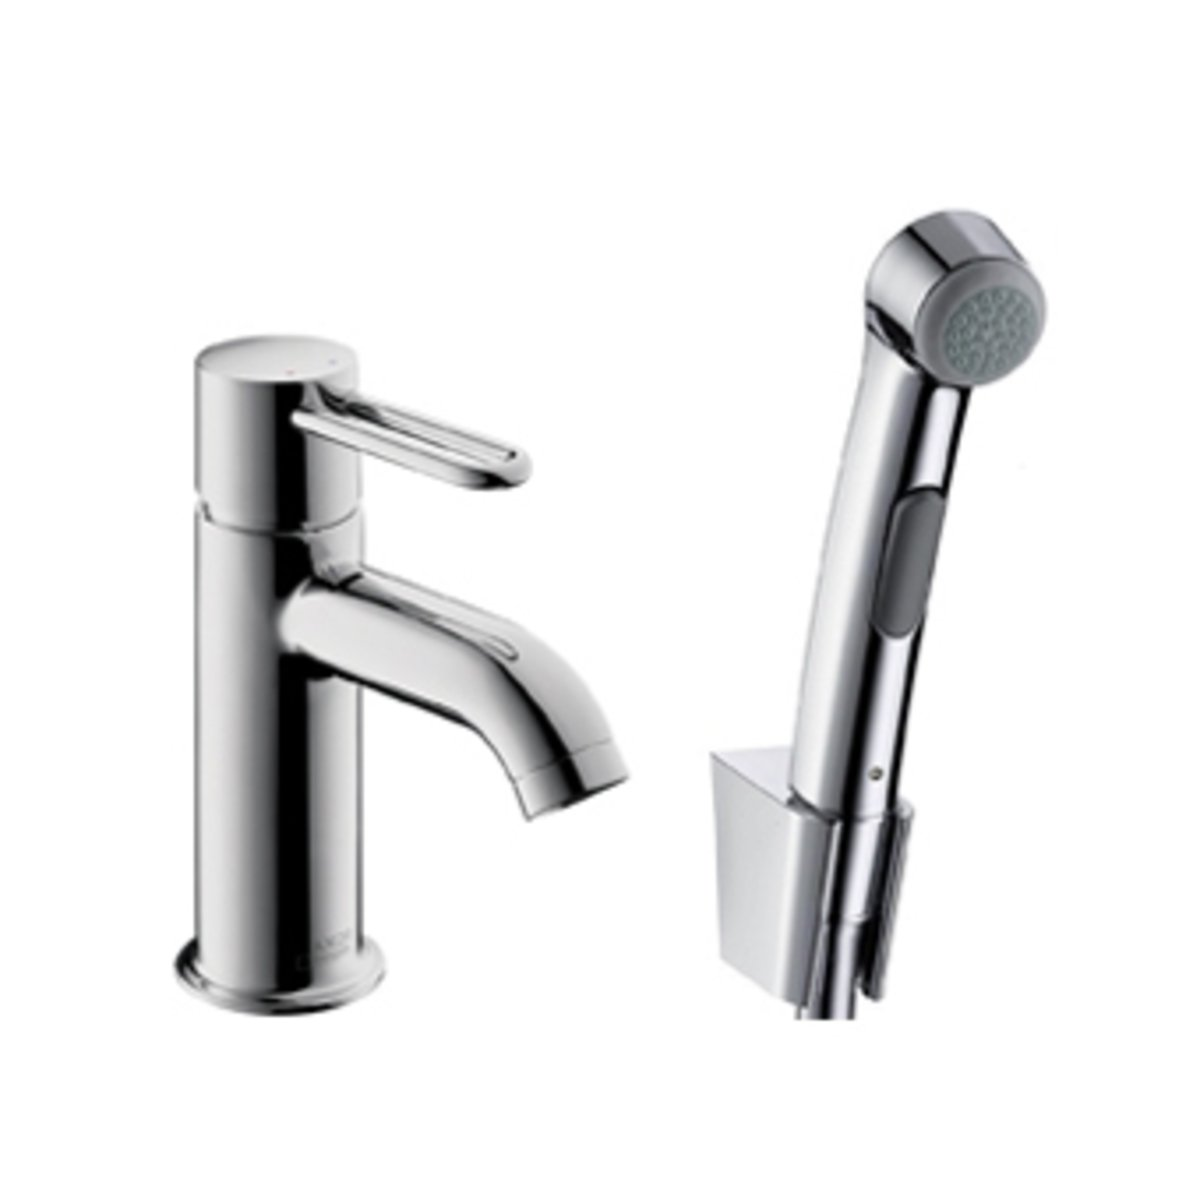 hansgrohe axor uno 2 robinet pour lavabo 1poign e avec douchette de bidet chrome 38225000. Black Bedroom Furniture Sets. Home Design Ideas